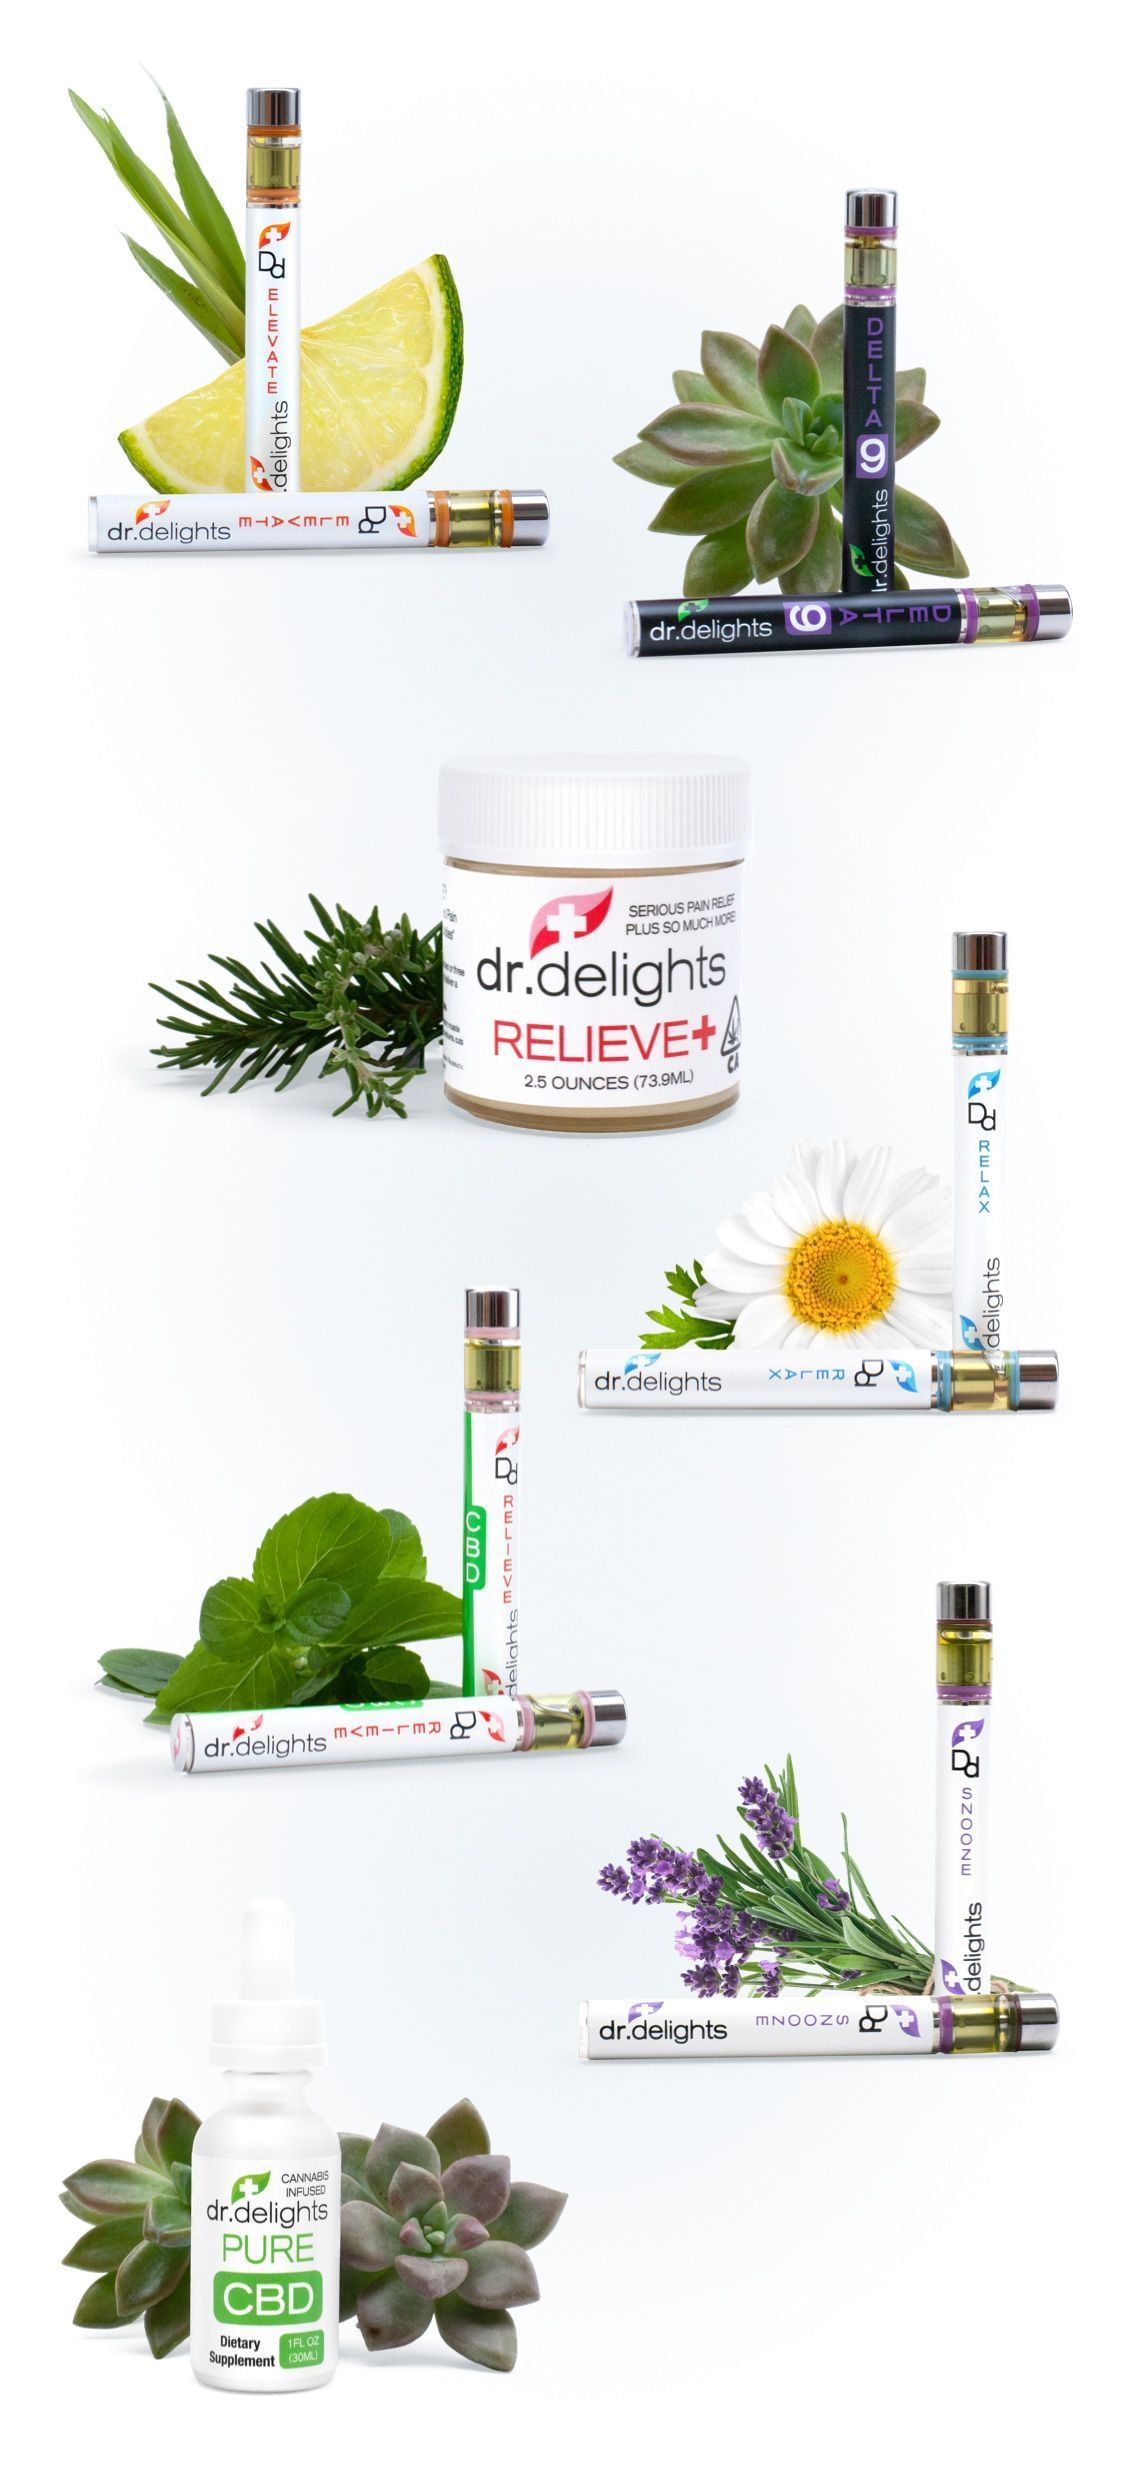 Dr Delights - Product Photography